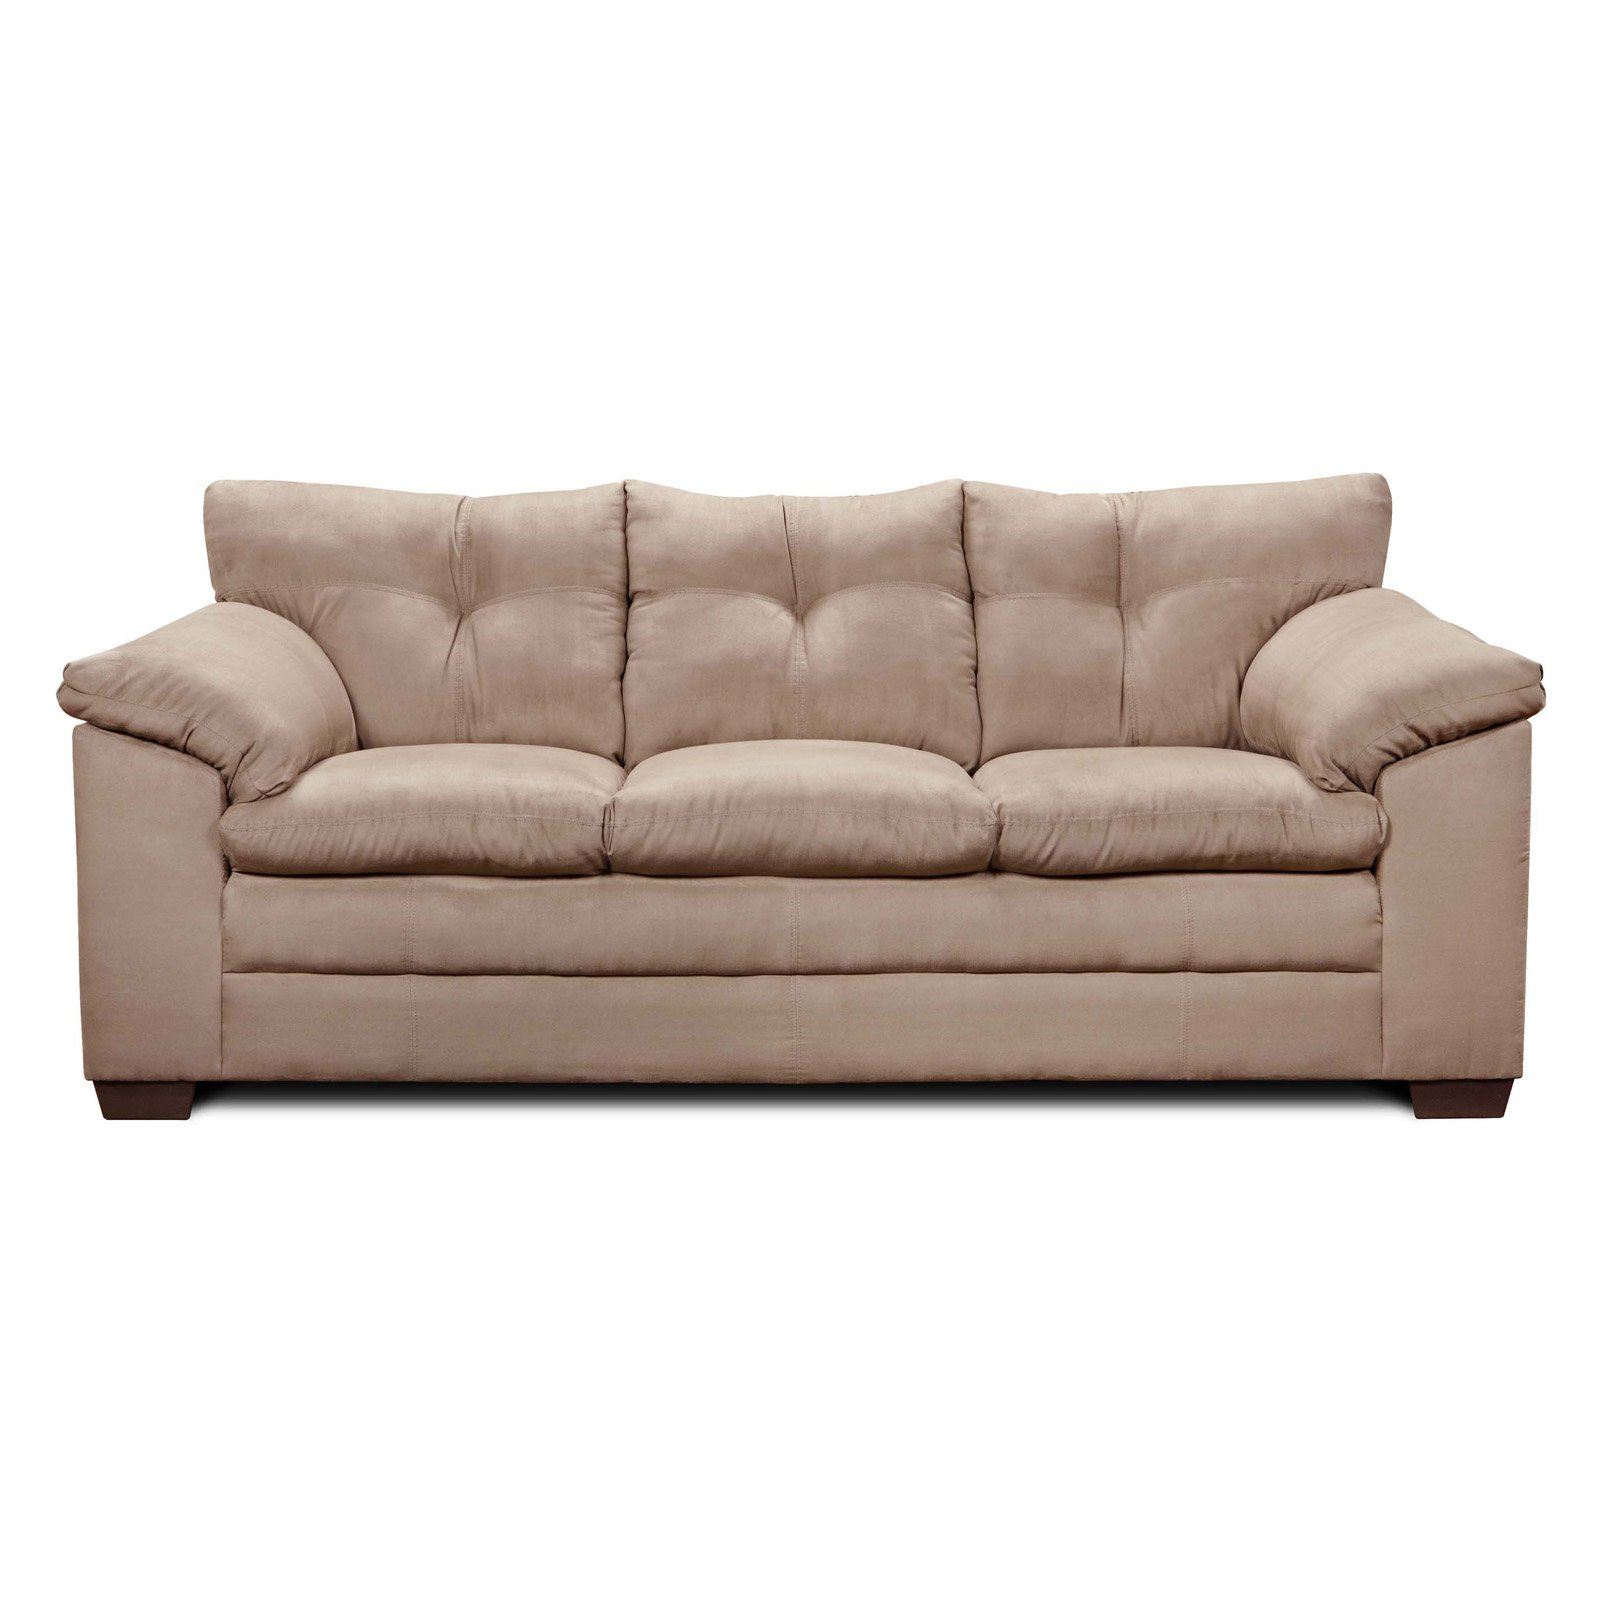 simmons blackjack cocoa reclining sofa and loveseat repair cost in hyderabad microfiber reviews sofas